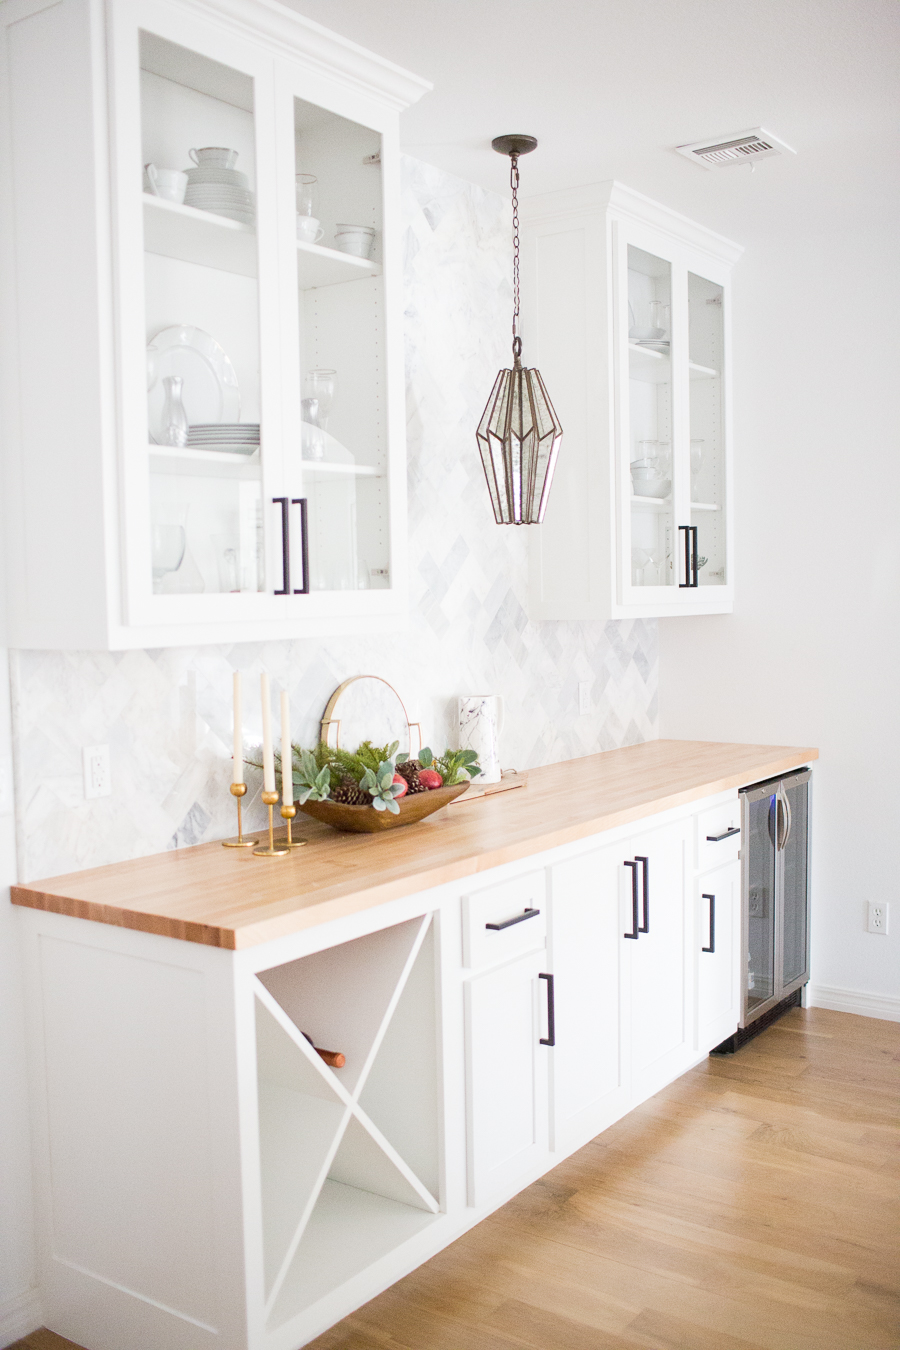 Tulsa Remodel Reveal Modern White Farmhouse black windows and doors marble herringbone backsplash bar butcher block countertop white cabinets black hardware bar faceted pendant lighting-1-3